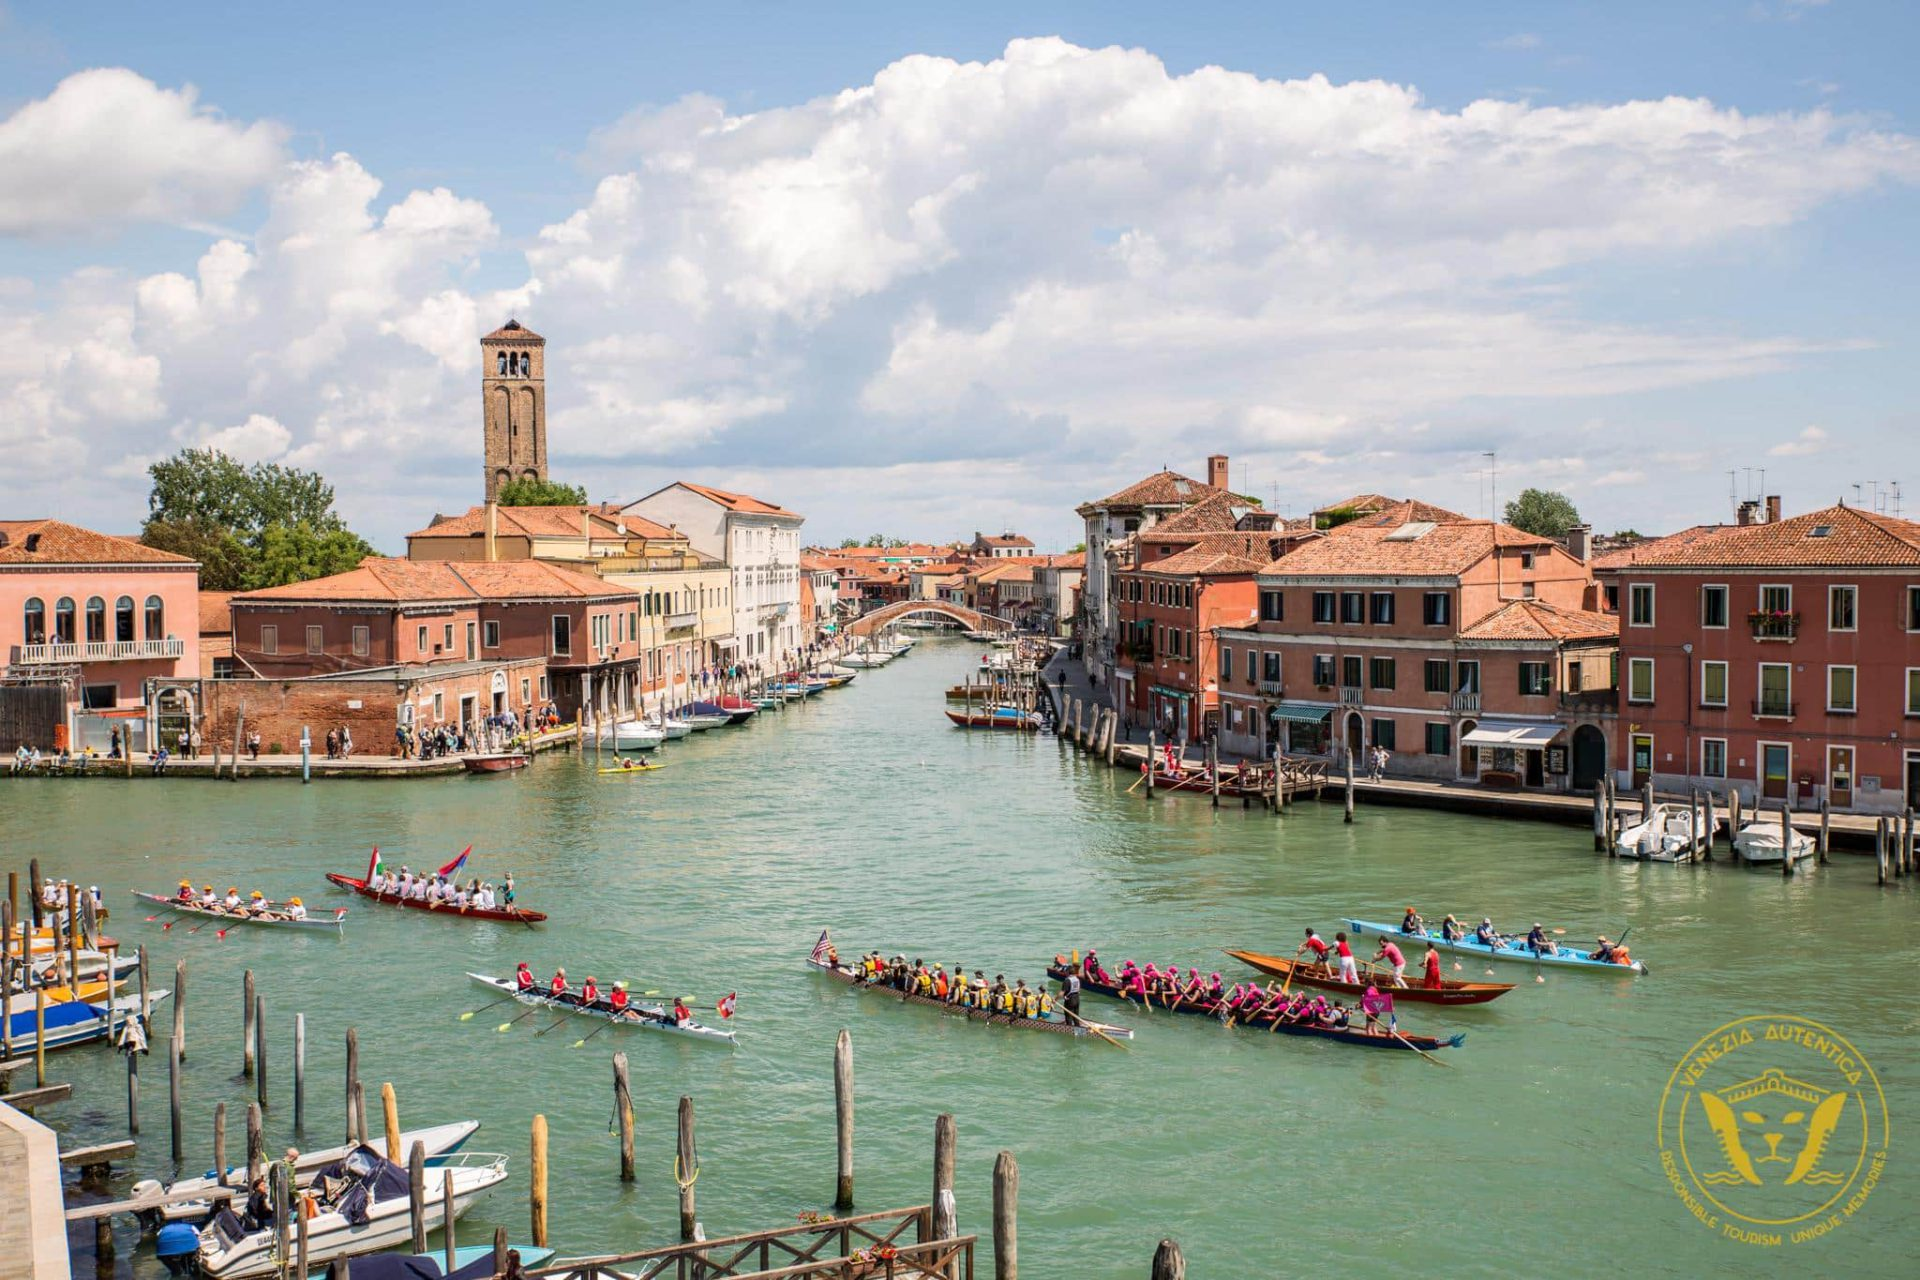 From a local event to an international rowing appointment in Venice, Italy: La Vogalonga [VIDEO+PHOTO] - Venezia Autentica | Discover and Support the Authentic Venice - The Vogalonga is a non competitive 30km race across Venice canals and its lagoon. The first edition in 1975 aimed at bringing back the use of rowing boats